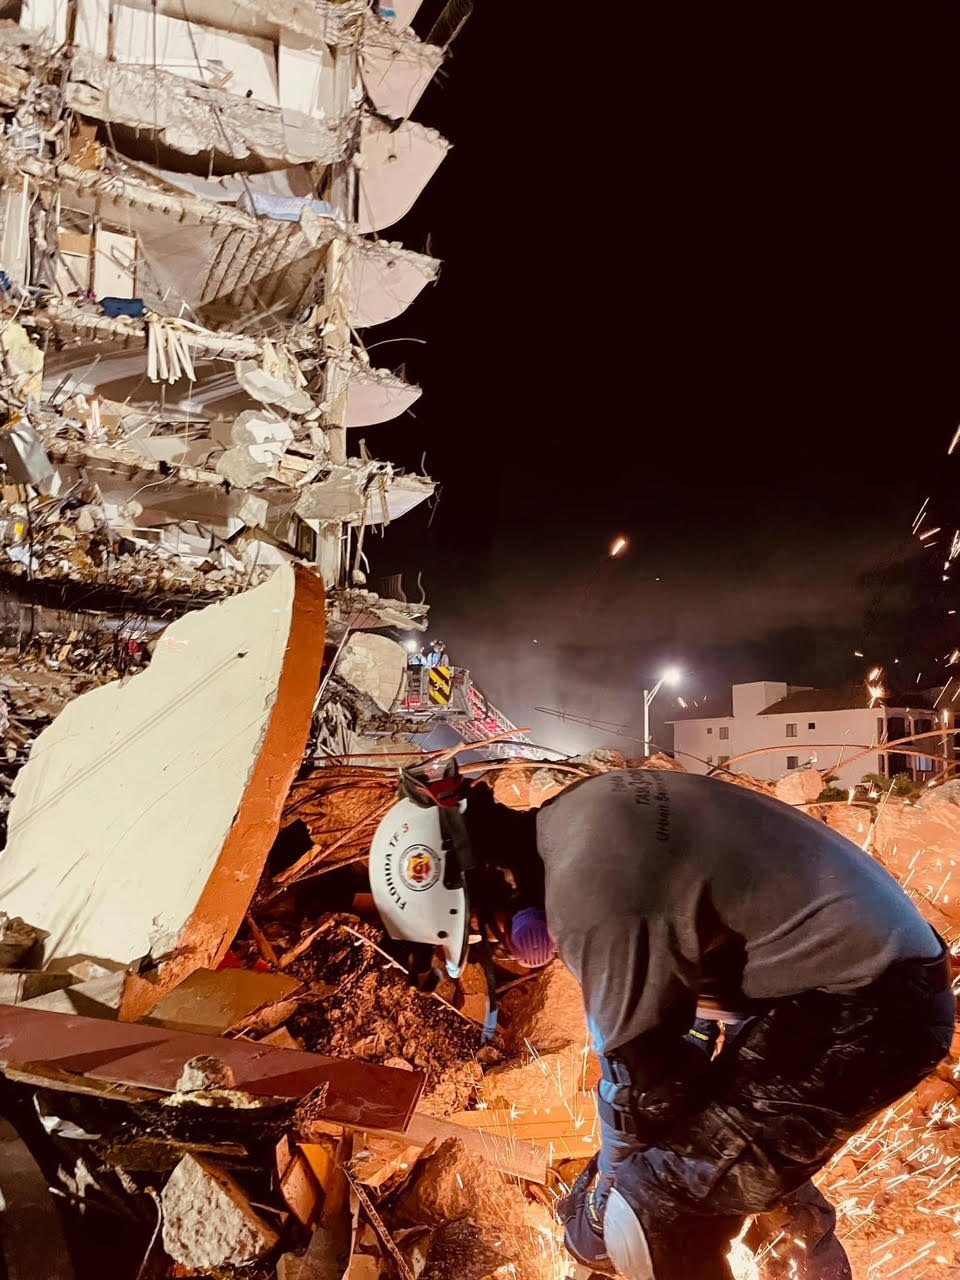 A photo of a rescue worker in the rubble of a collapsed building at night.